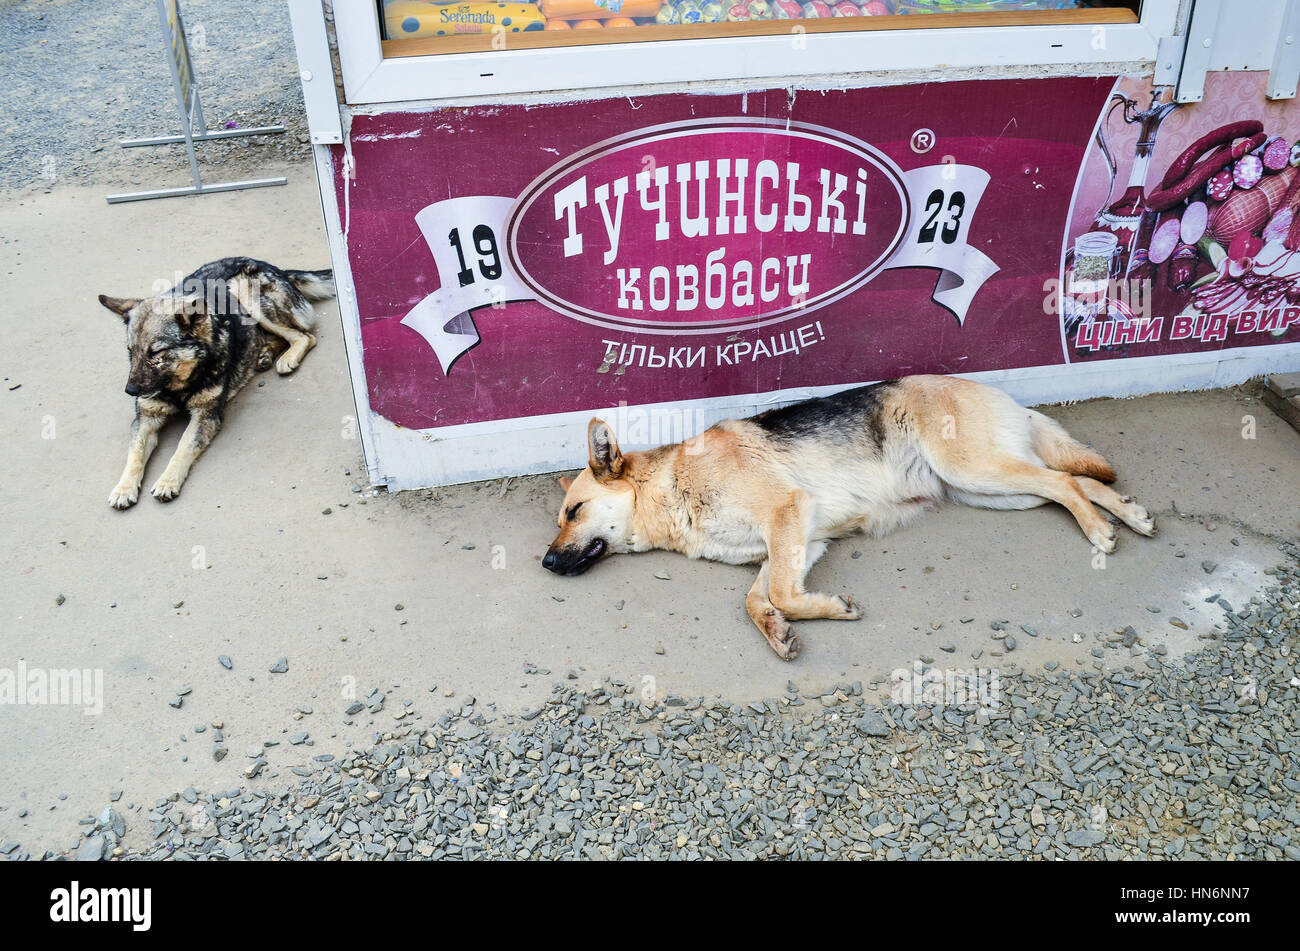 Rivne, Ukraine - May 14, 2013: Two stray homeless dogs sleeping on street by a sausage deli store - Stock Image